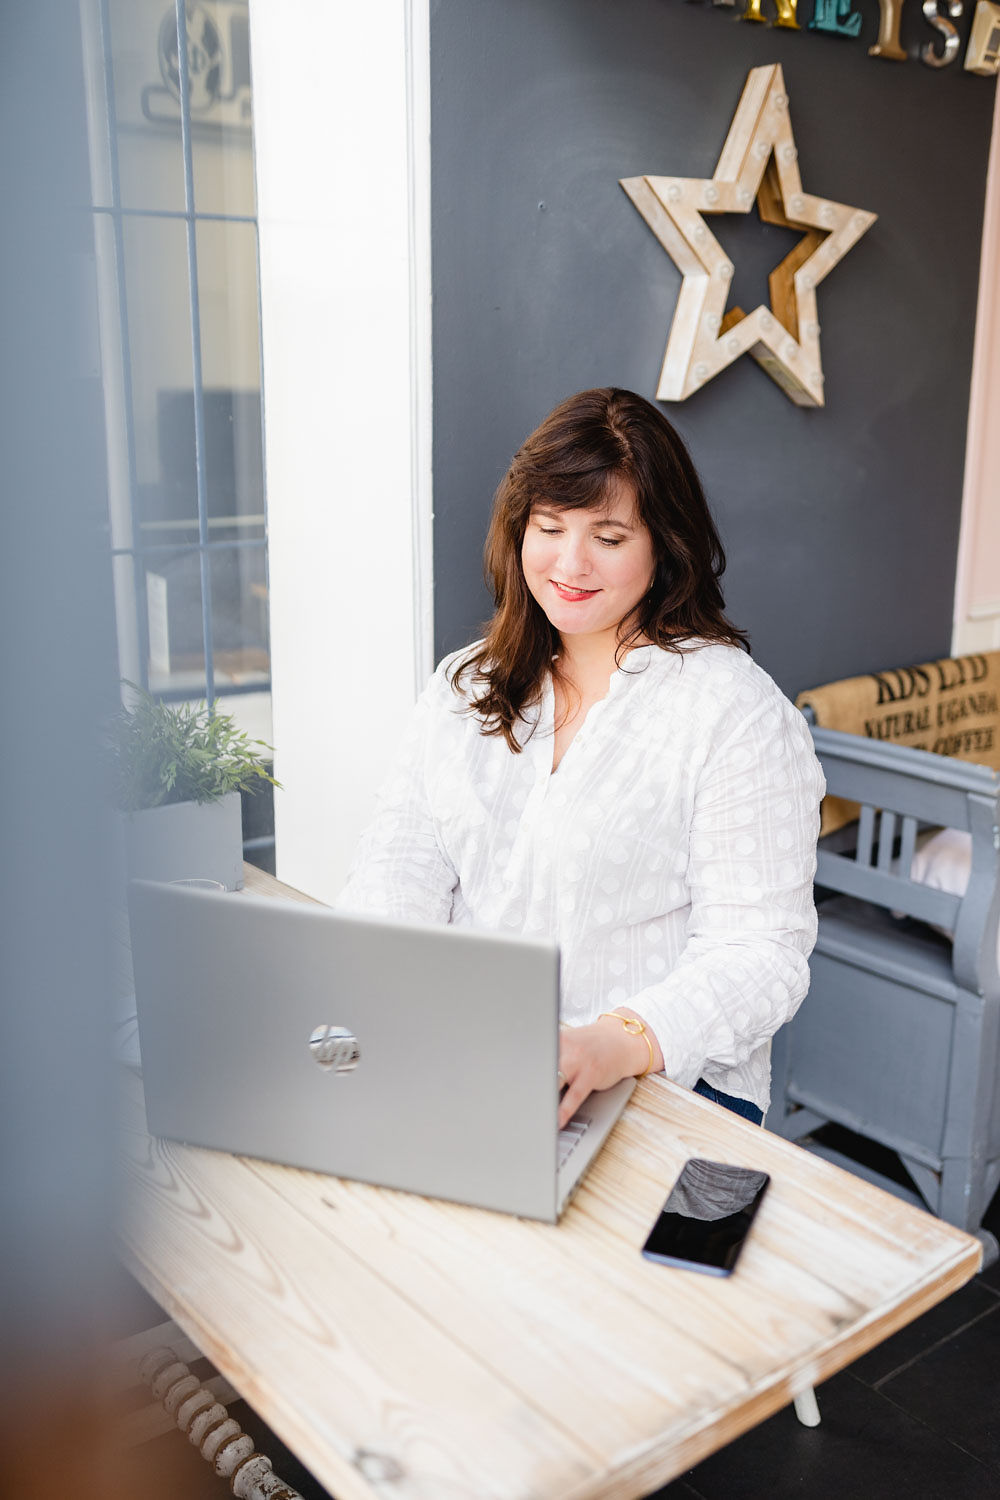 I'm sitting at a window table in a café. There's a white, wooden star on the wall (dark grey) behind me. On the table, you can see my open laptop and phone. I have long dark hair and am wearing a long-sleeved white shirt; I'm looking at the laptop and typing.